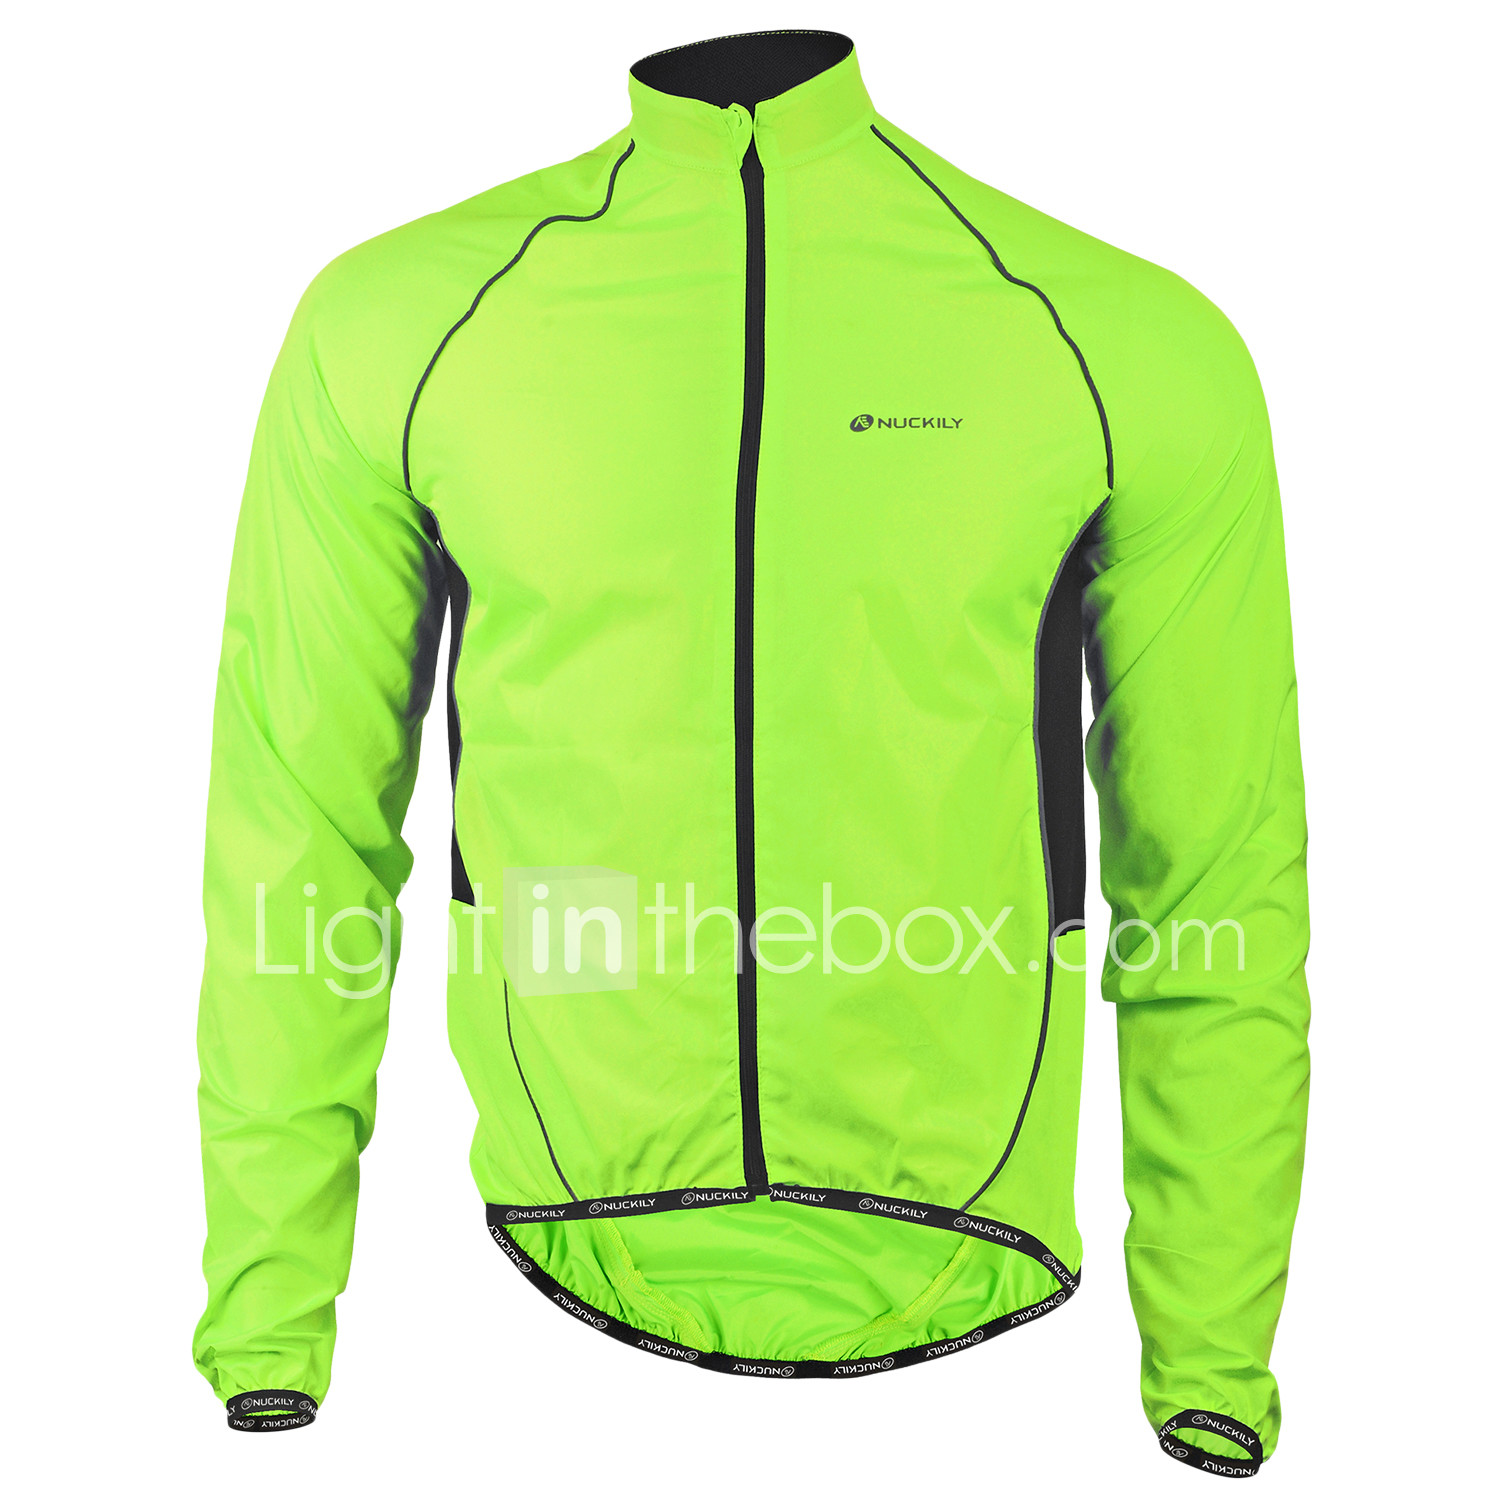 Nuckily Men s Cycling Jacket Bike Jacket Windbreaker Raincoat Waterproof  Windproof Breathable Sports Polyester Winter Green Mountain a409957de